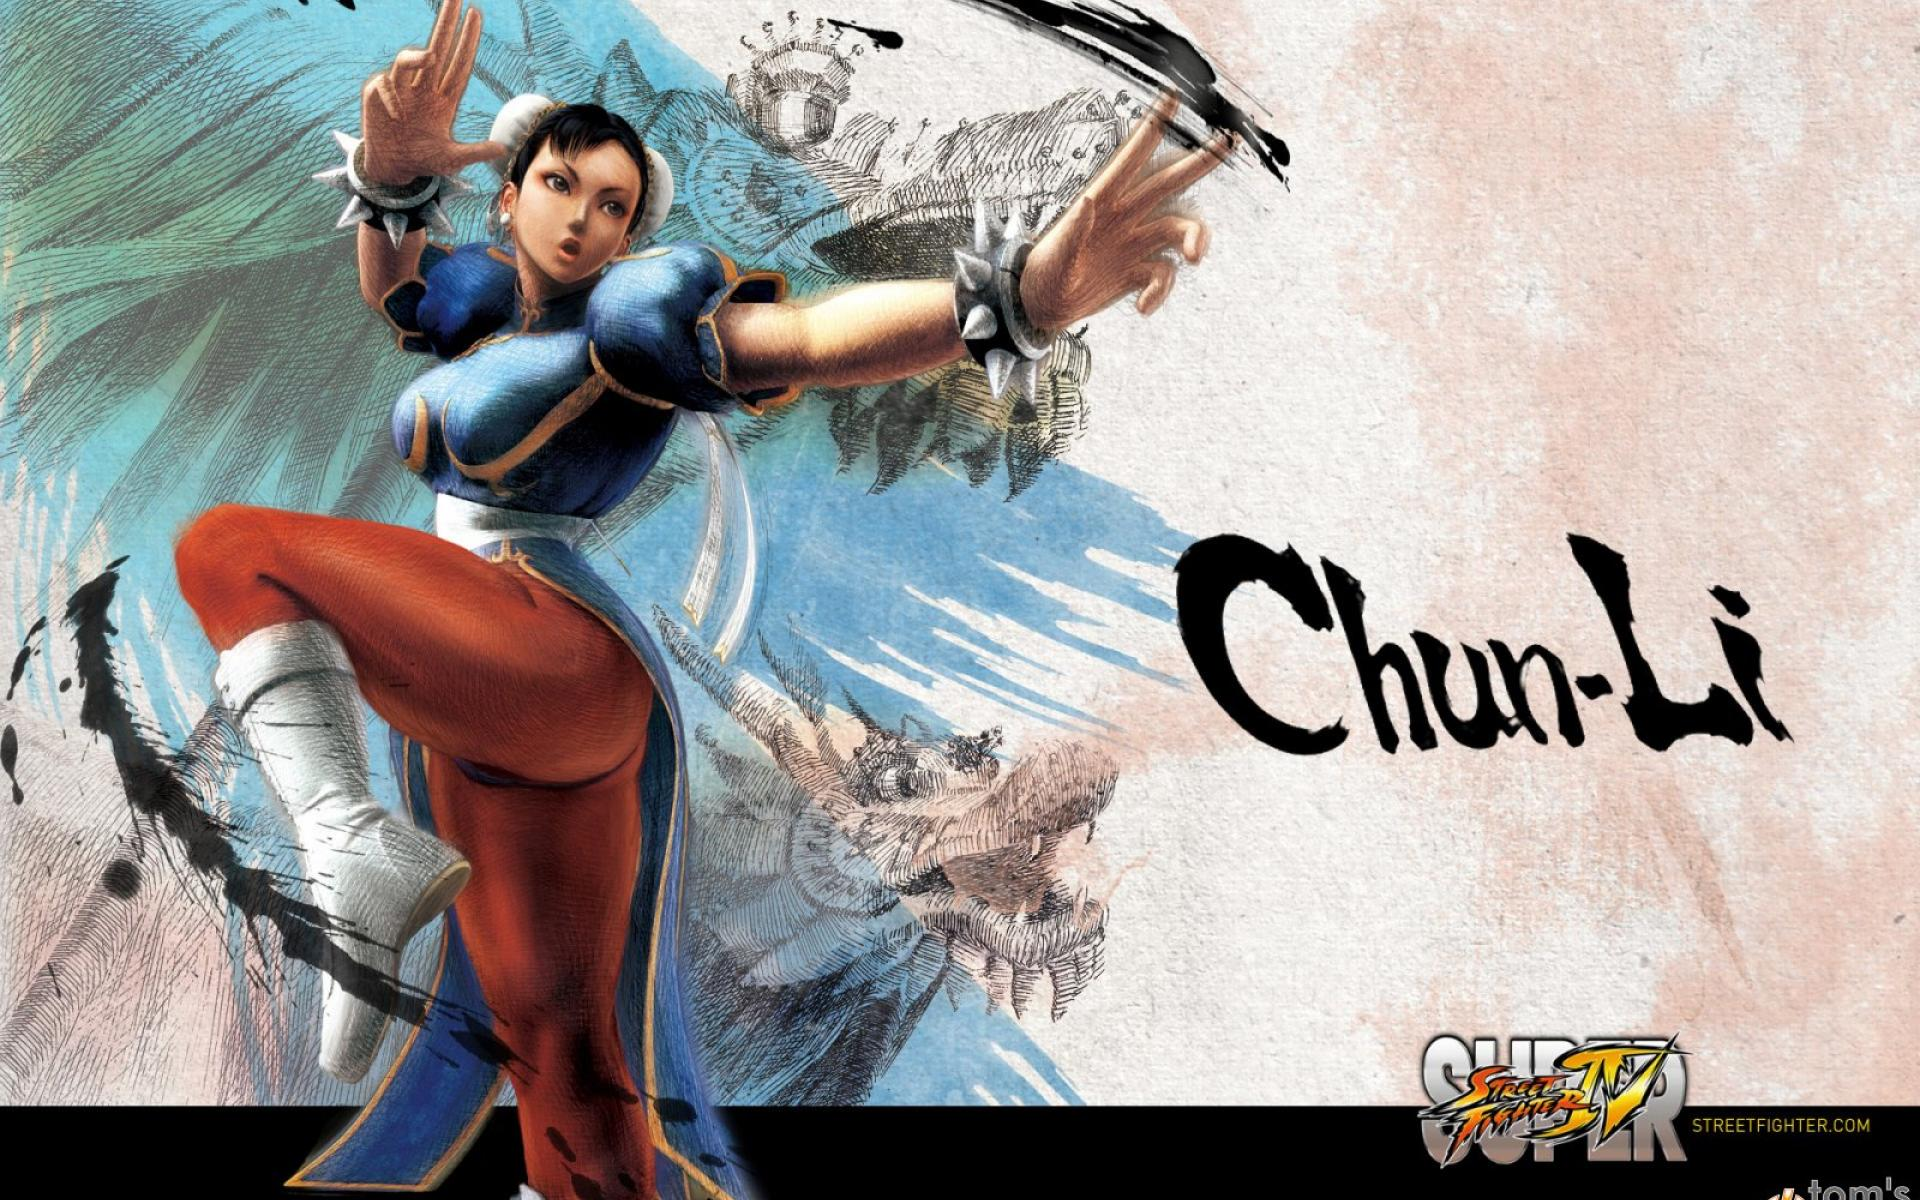 Free Download Street Fighter Chun Li 1920x1200 For Your Desktop